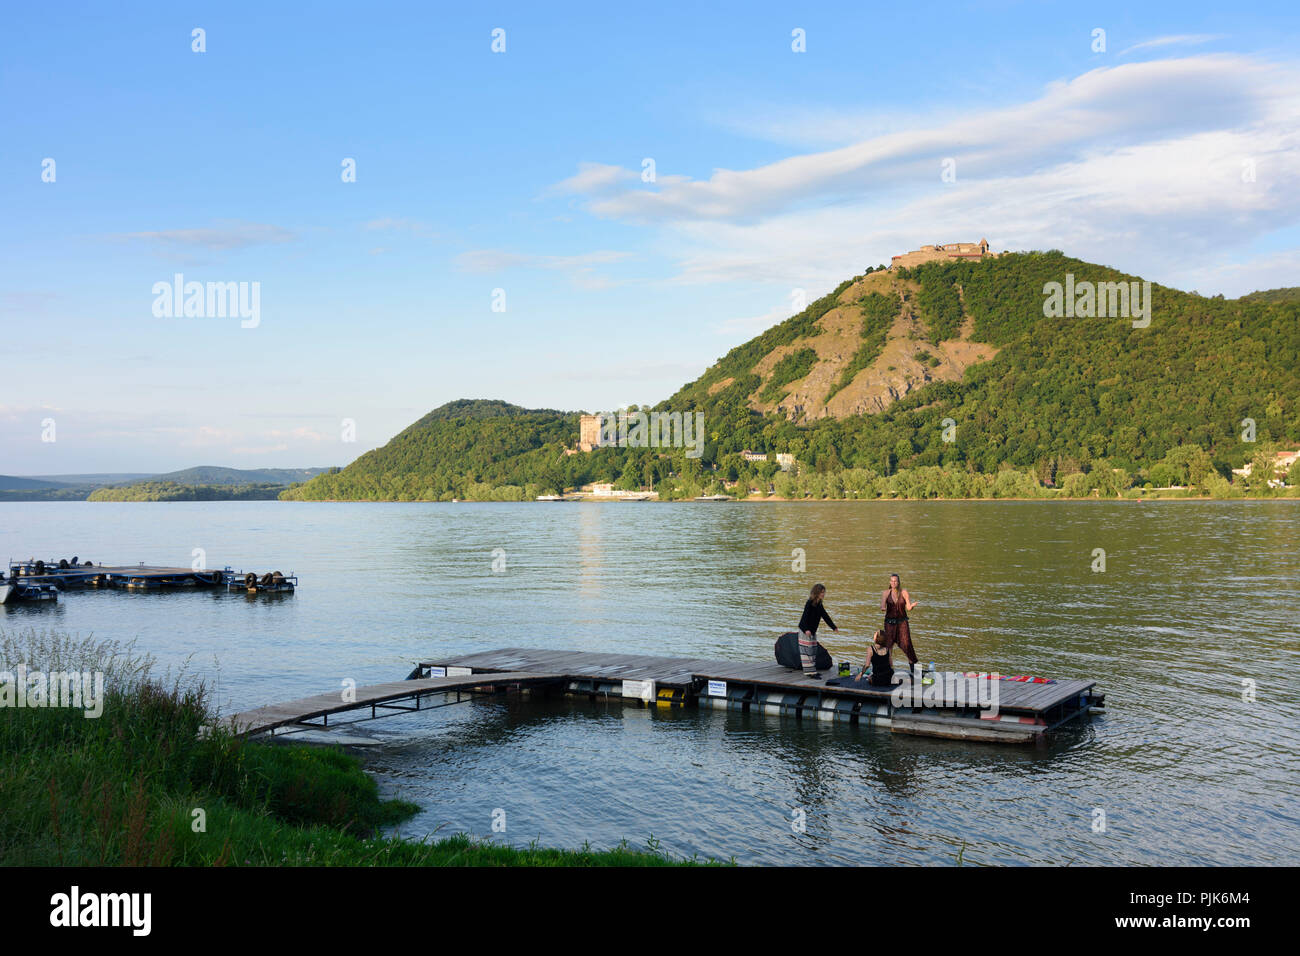 Visegrad (Plintenburg), river Danube, Upper and Lower Castle, view from Nagymaros, partying women at float in Hungary, Pest, Danube Bend (Dunakanyar) - Stock Image